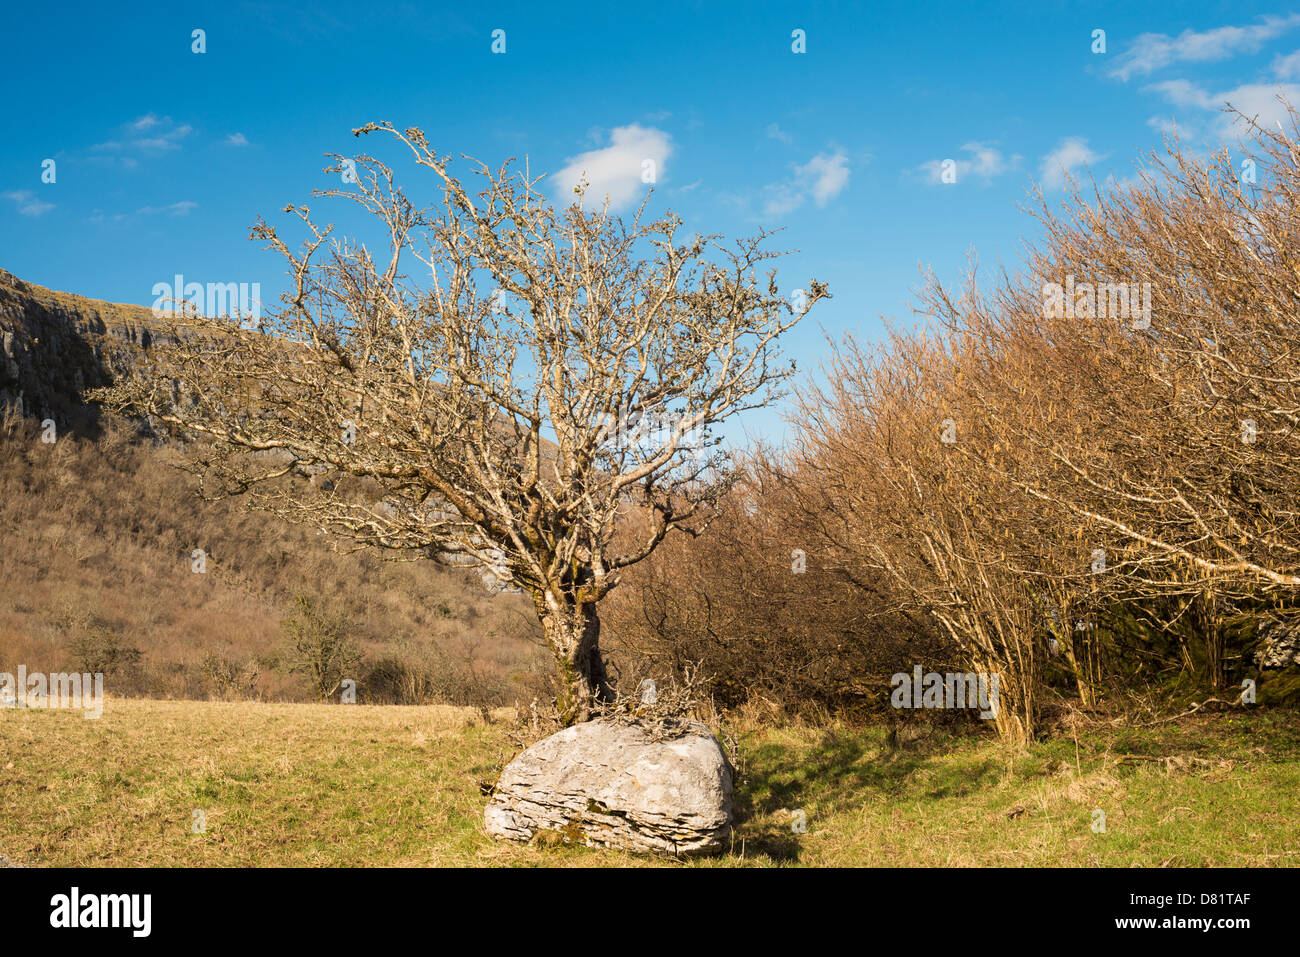 Hawthorn tree and hazel scrub in early spring at Keelhilla National Nature Reserve, the Burren, County Clare, Ireland - Stock Image